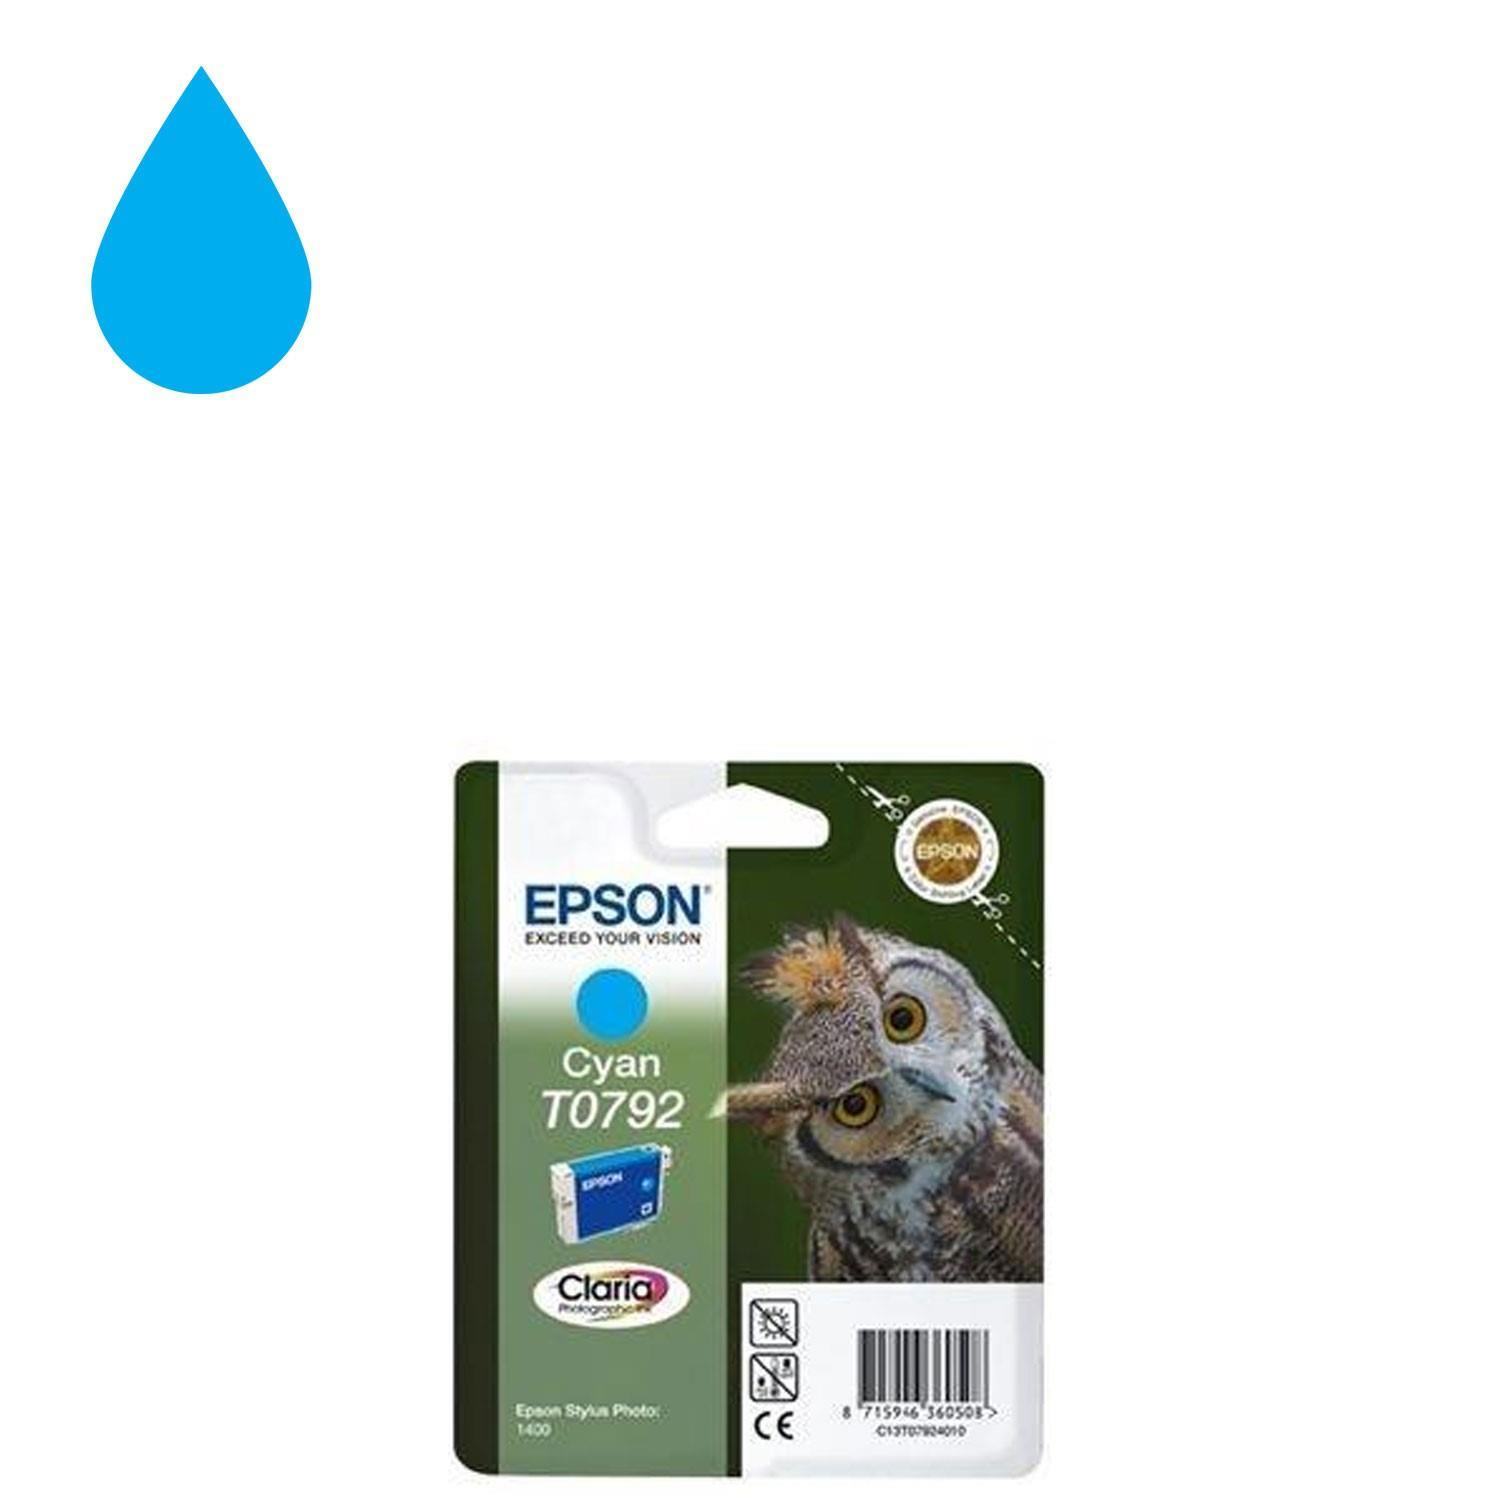 Genuine Epson Ink Cartridge Owl Cyan T0792 for Stylus Photo 1400 Printer